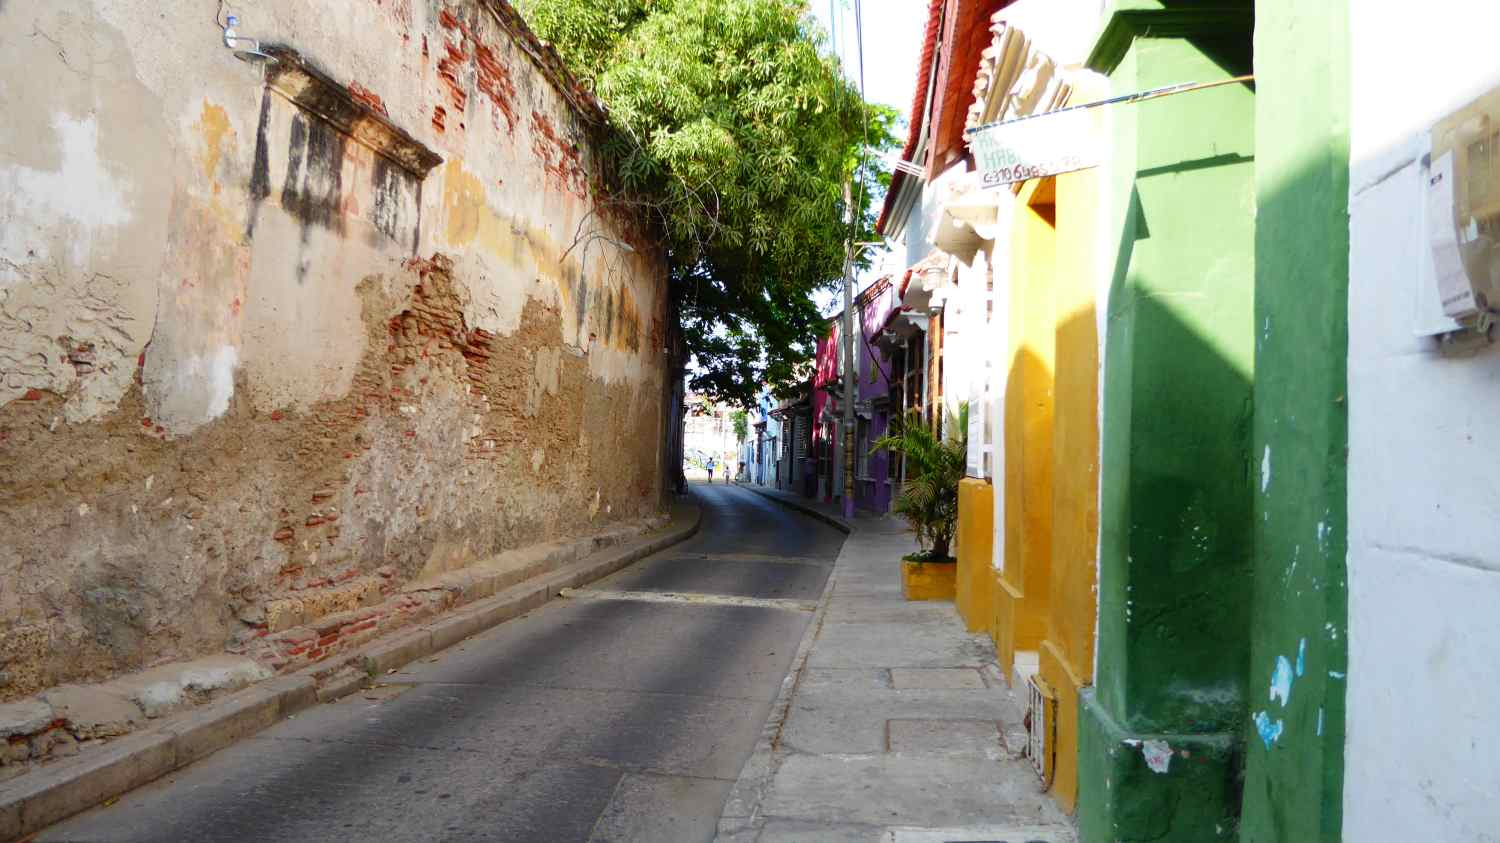 Streets and alleys in Cartagena 1